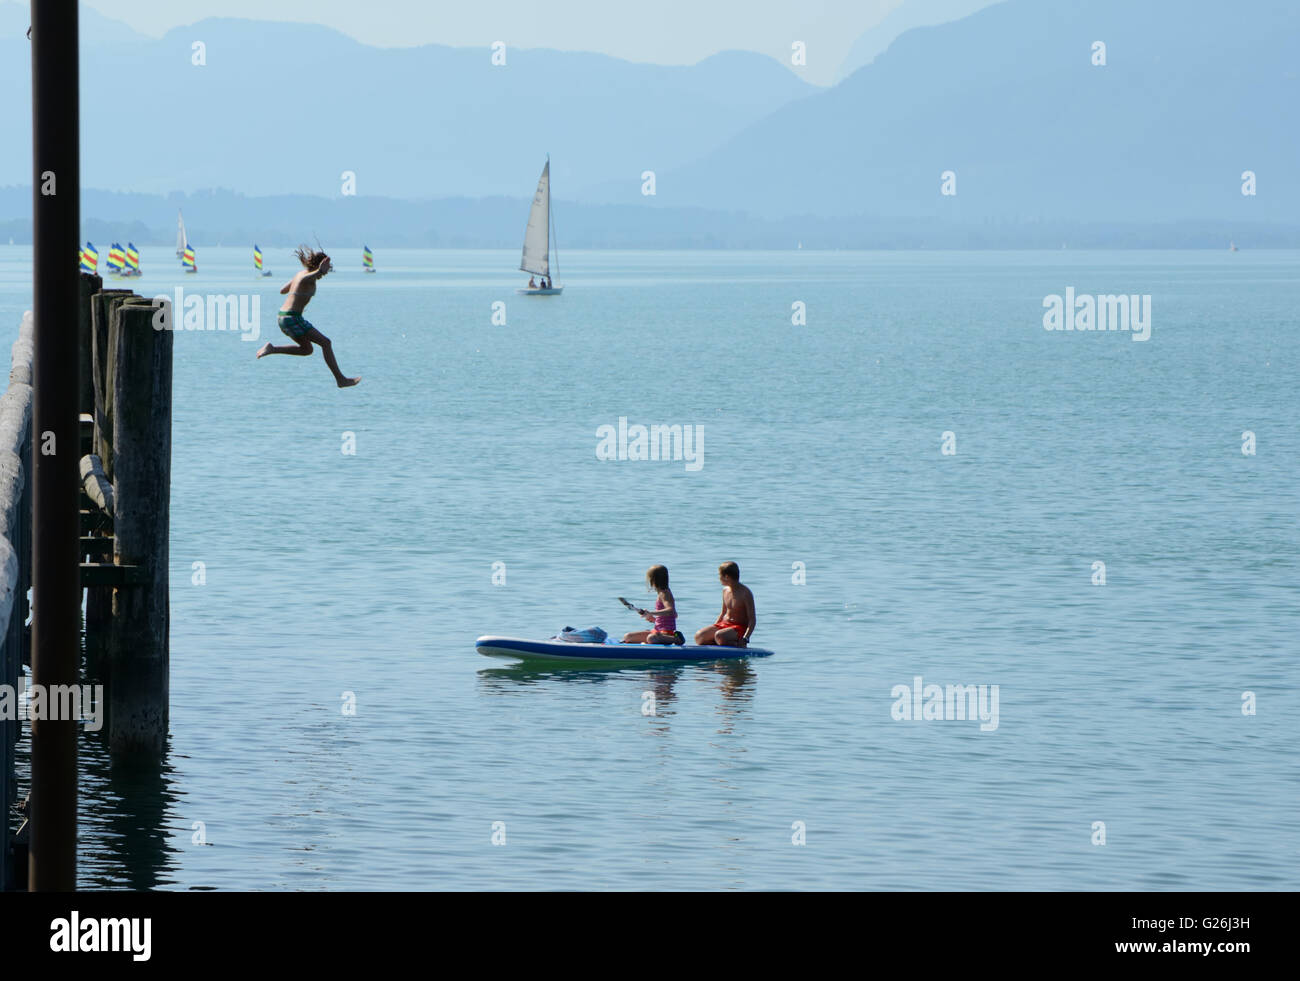 Seebruck, Germany - September 1, 2015: Two unidentified kids on kayak and girl jumping from high pier to water in Stock Photo